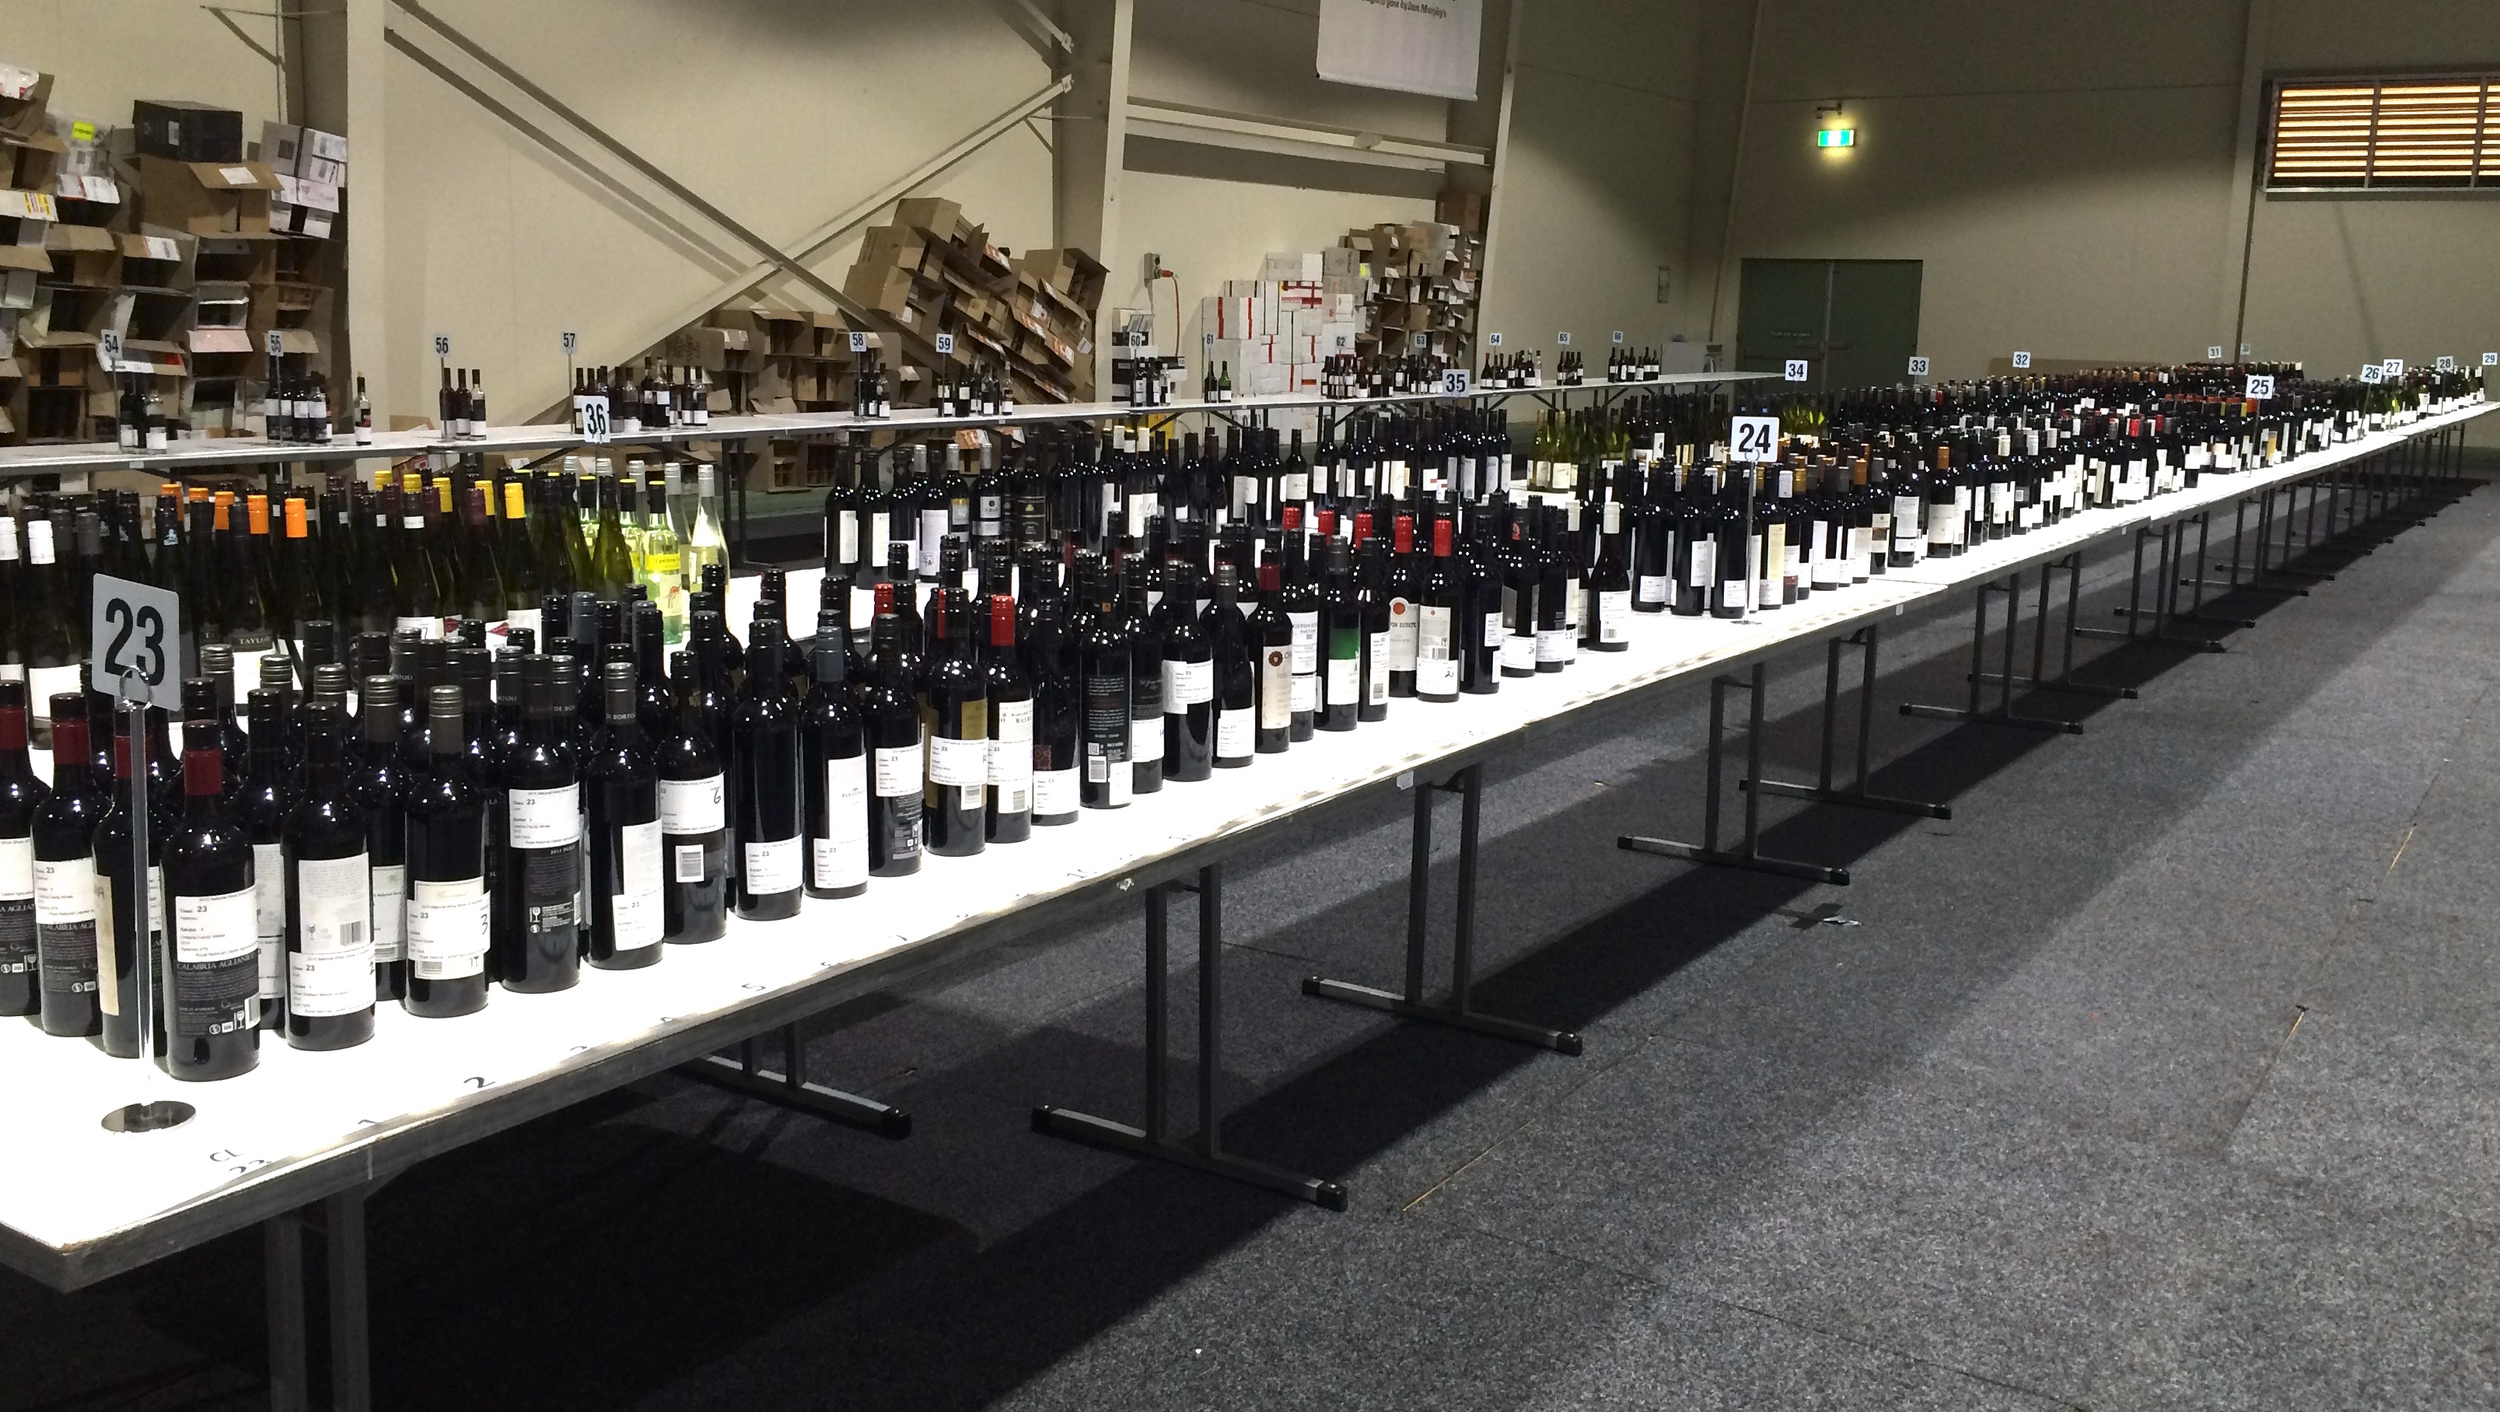 Behind the scenes at the National Wine Show in Canberra